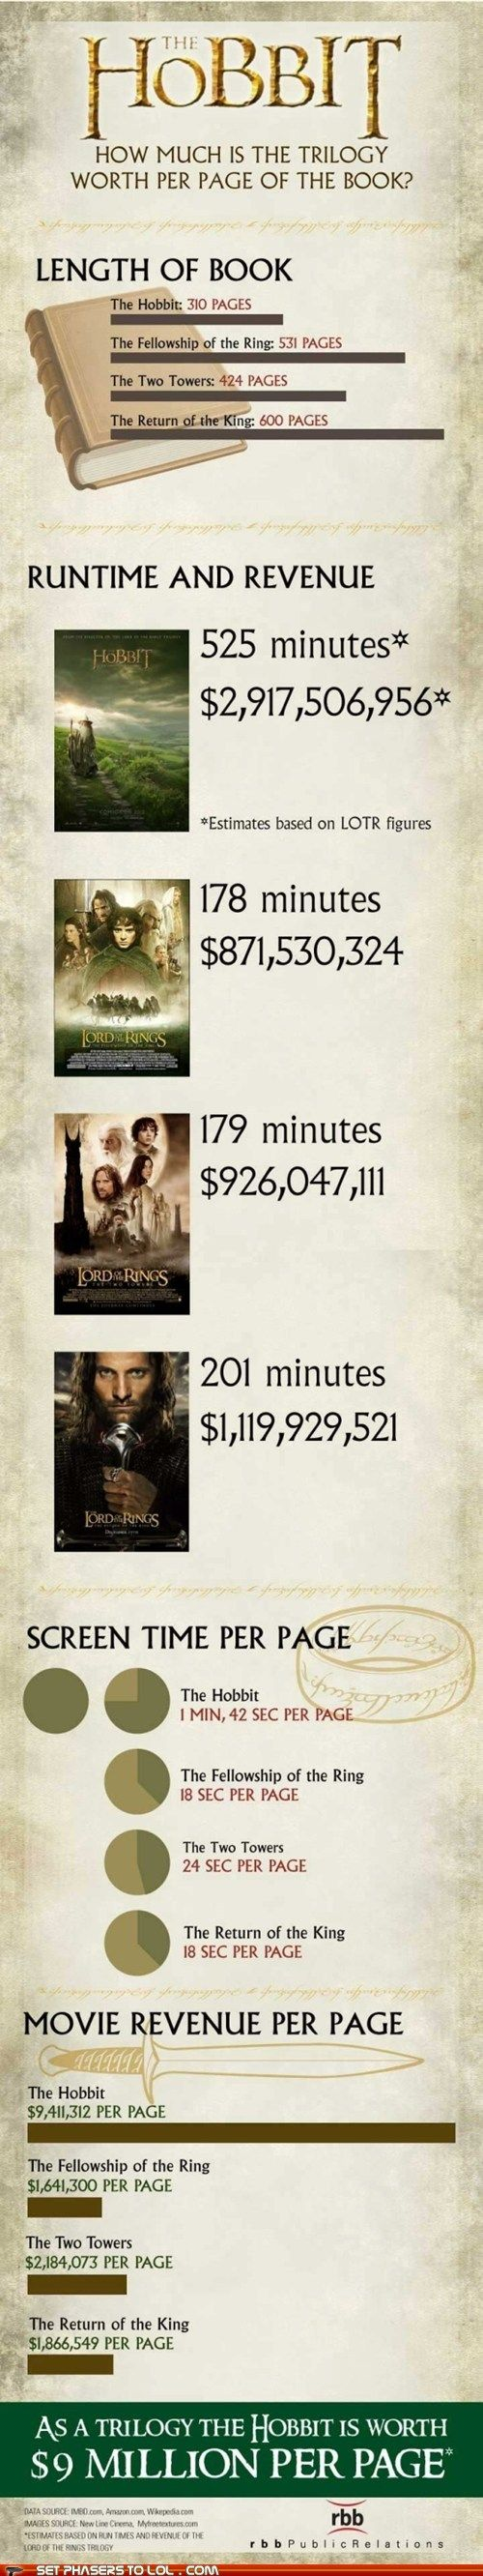 the hobbit how much is the trilogy worth per page of the book infographic lotr pinterest. Black Bedroom Furniture Sets. Home Design Ideas